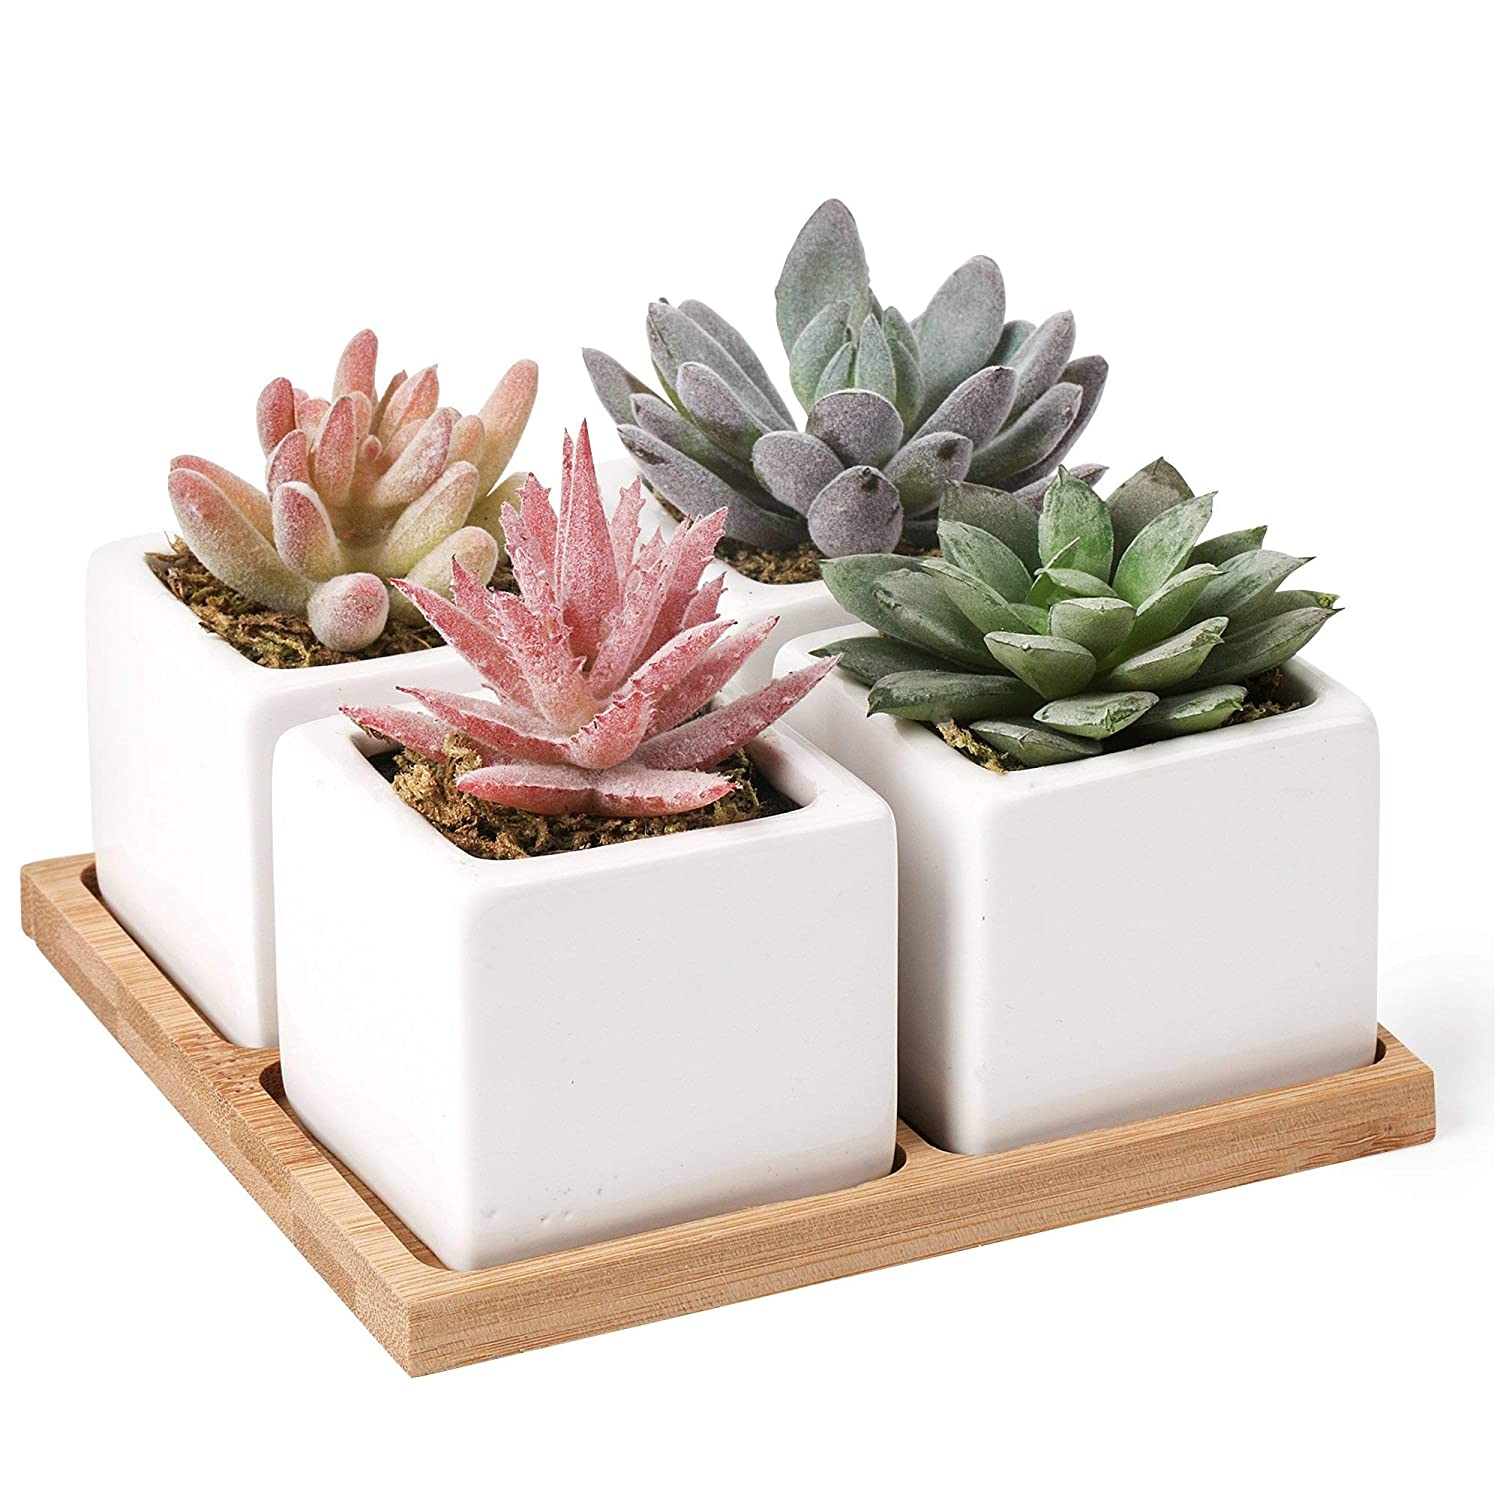 Artificial Succulent Plants Potted - Fake Succulents - Set of 4 - Faux Plants